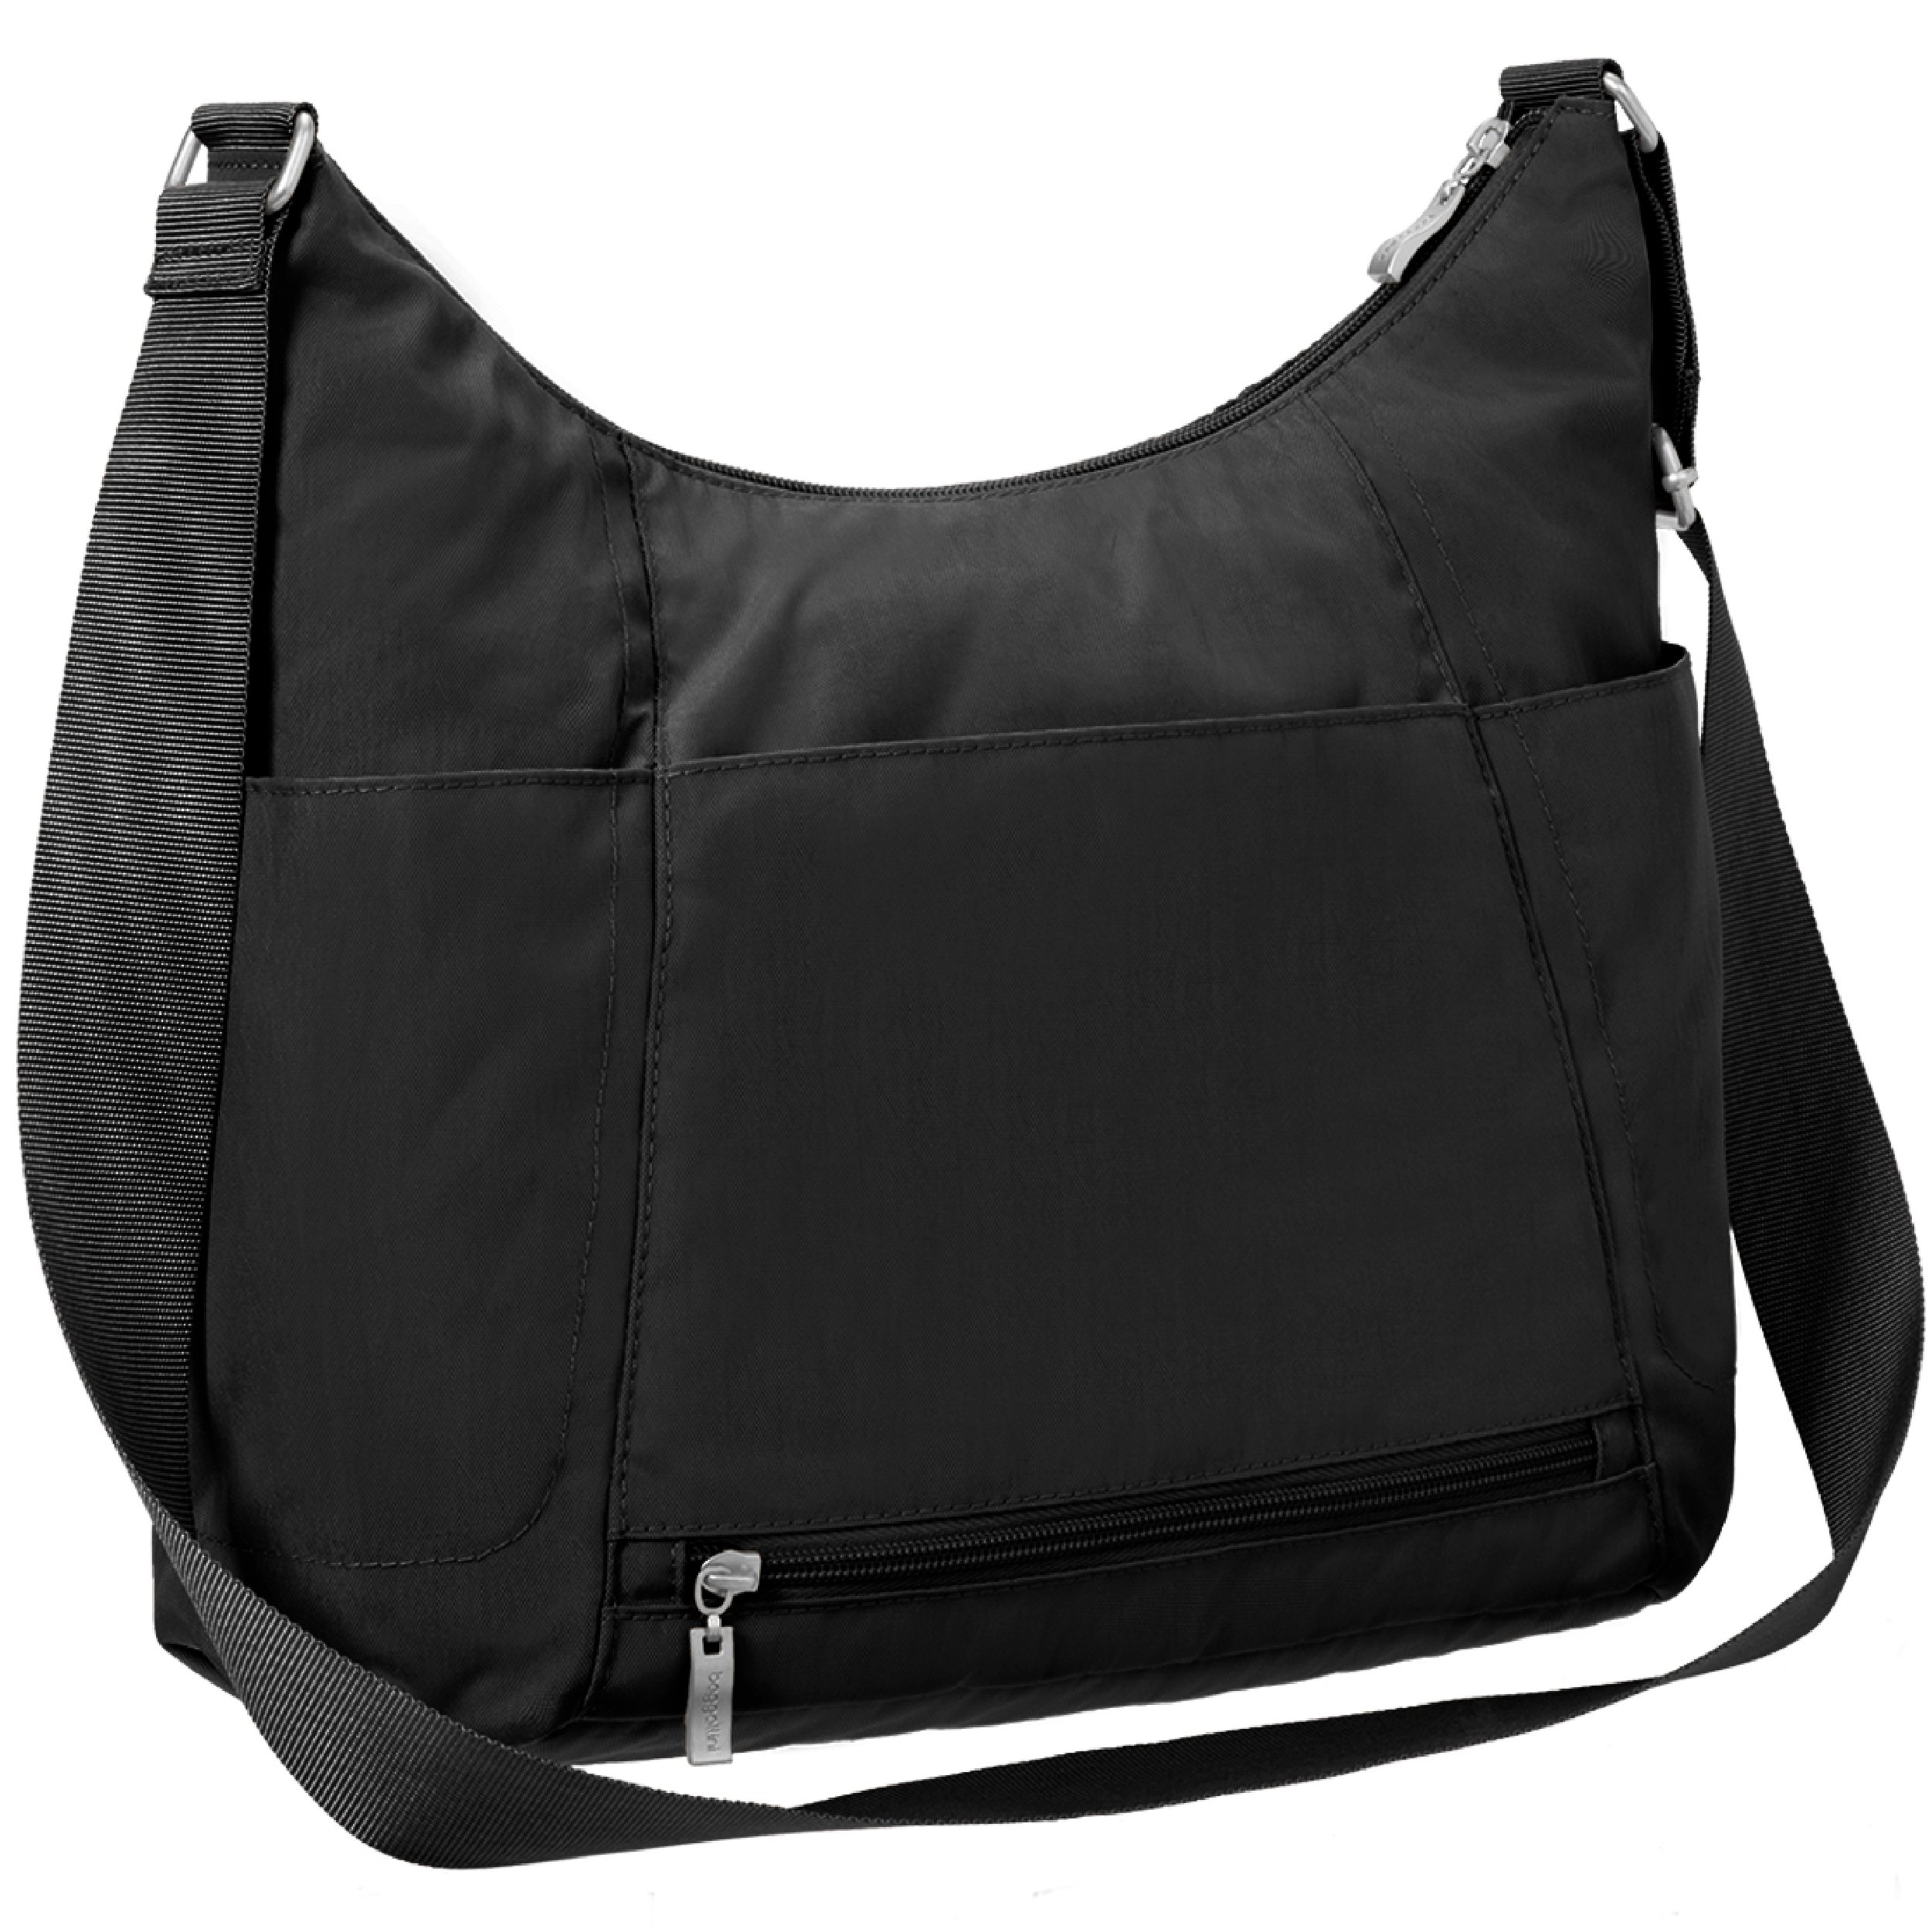 Baggallini Hobo Travel Tote, Black, One Size by Baggallini (Image #6)